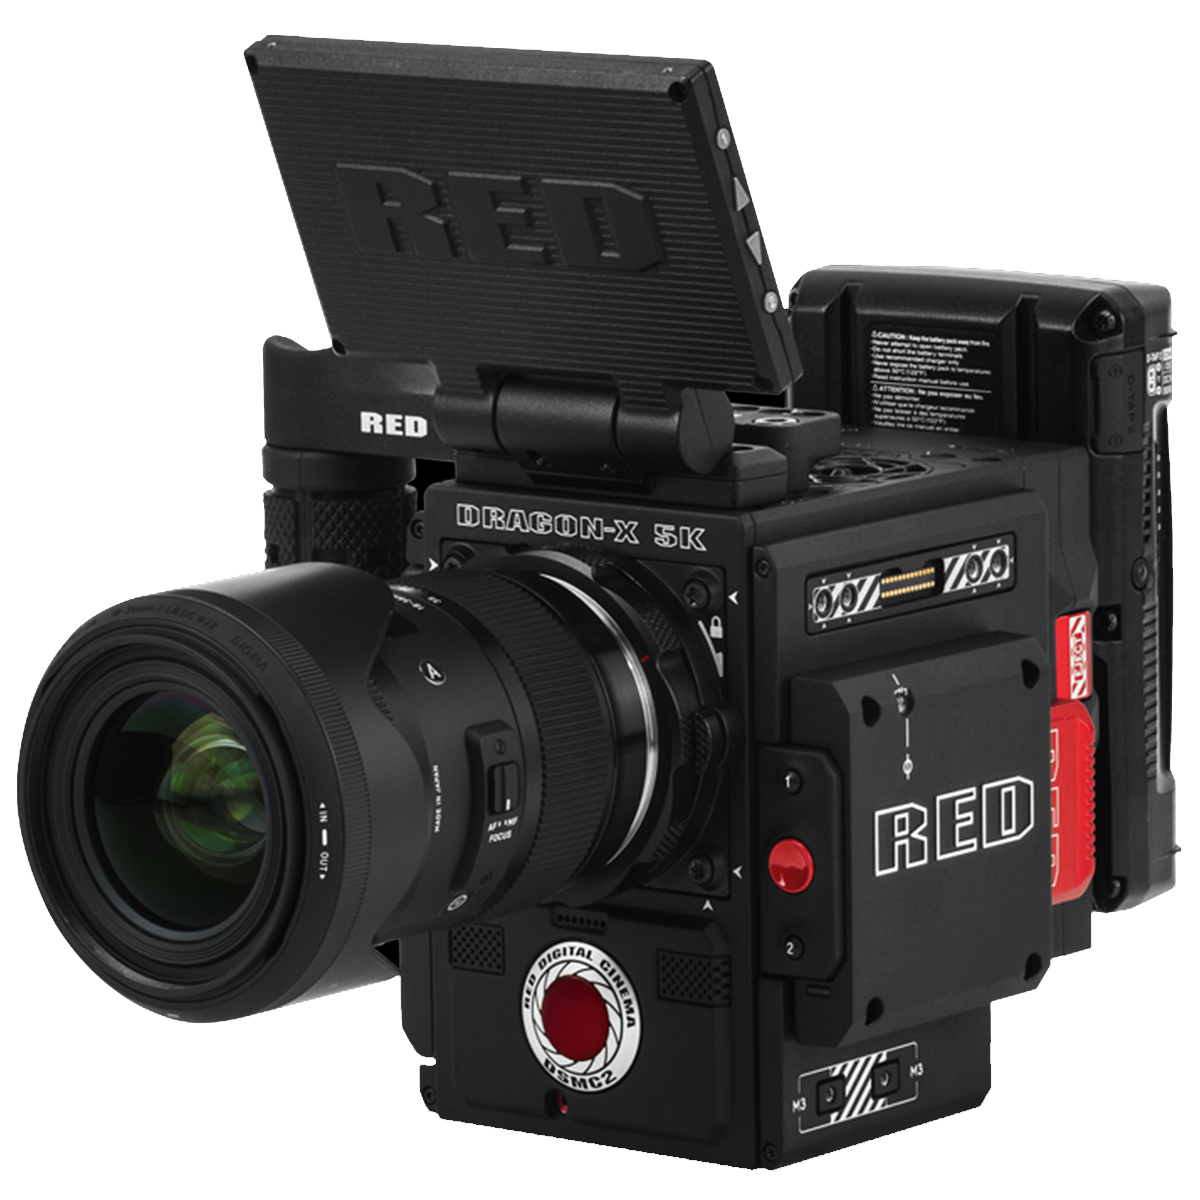 New S35 RED DRAGON-X Brain, Camera Kit and Production Module